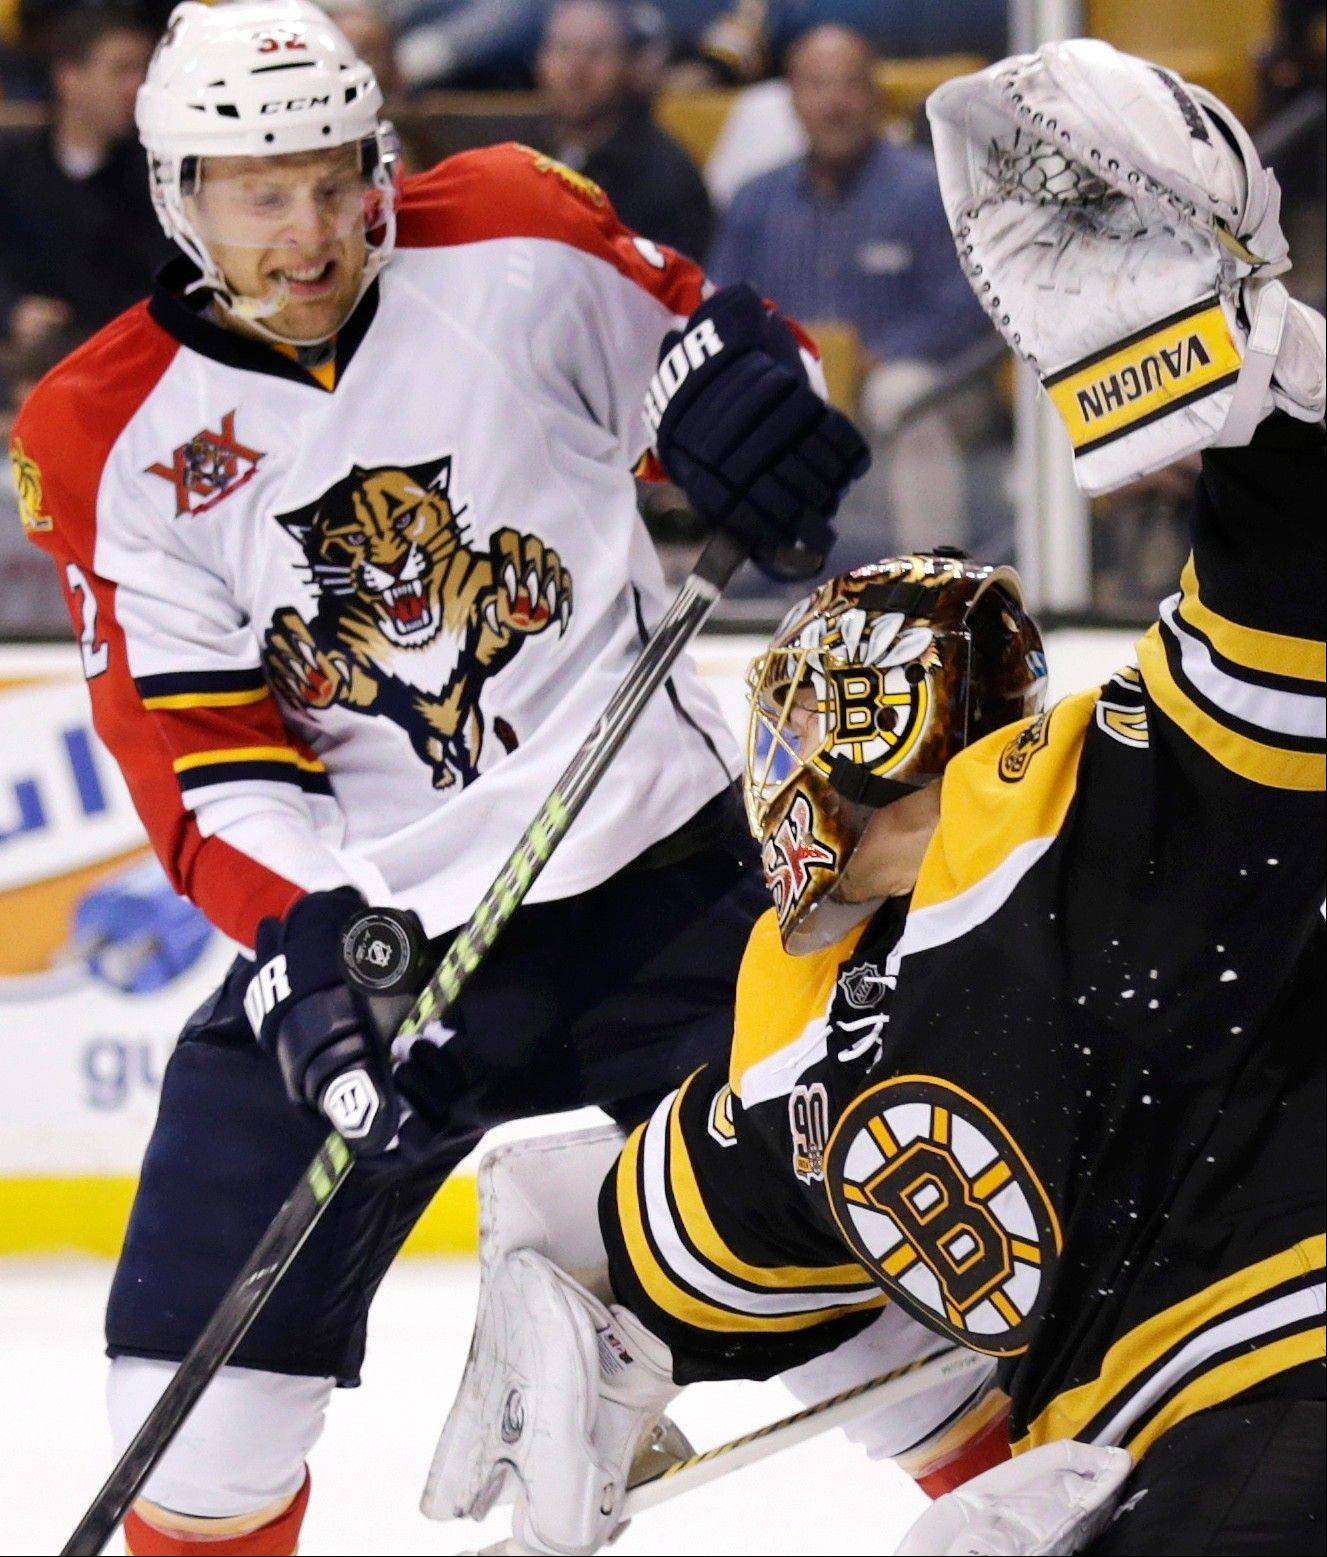 Bruins goalie Tuukka Rask makes a save as Florida's Kris Versteeg looks for the rebound during a game last week. Versteeg will rejoin the Hawks today after GM Stan Bowman acquired him via trade from the Panthers.